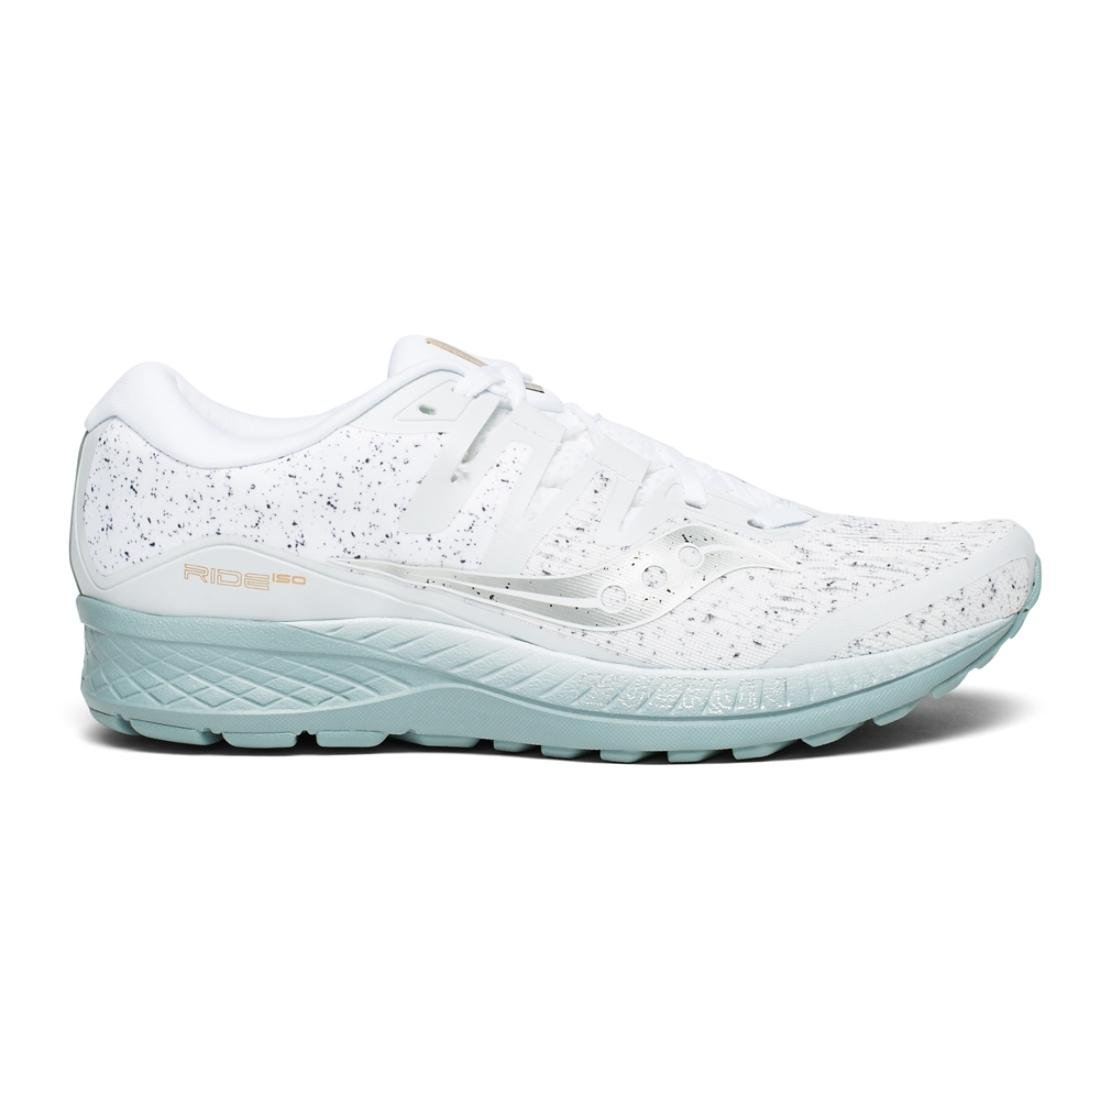 Saucony Men's Ride Iso Running Shoes B078PM8BYD 11 D(M) US|White